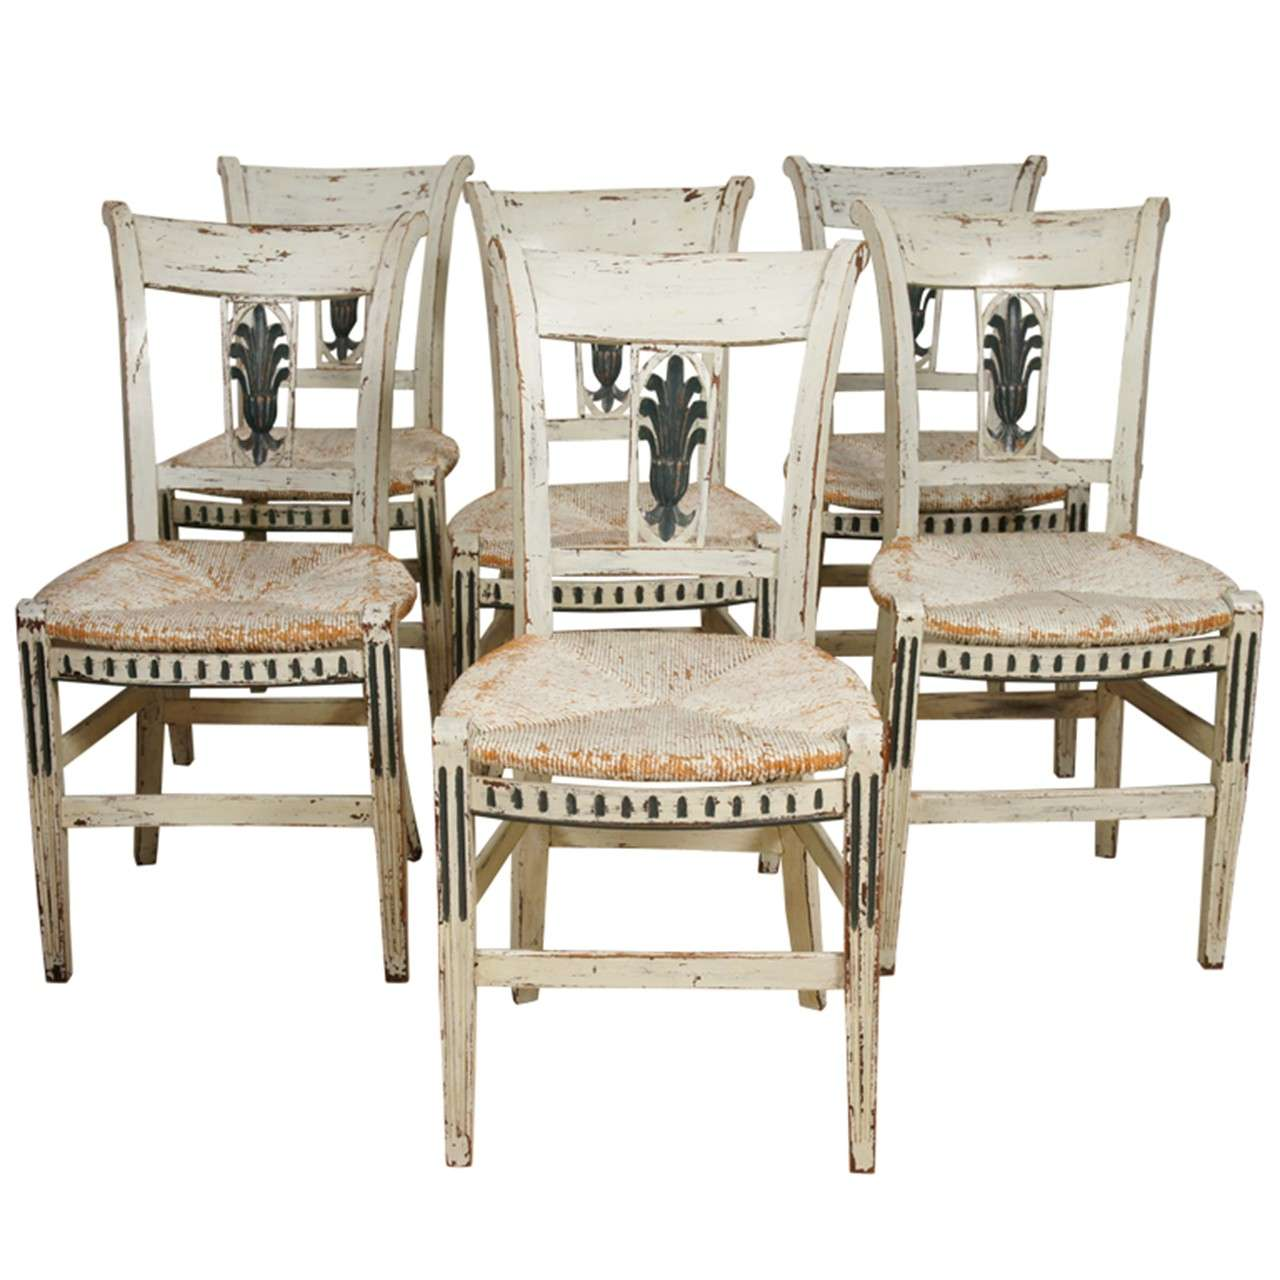 French Provincial painted Dining Room Chairs furniture